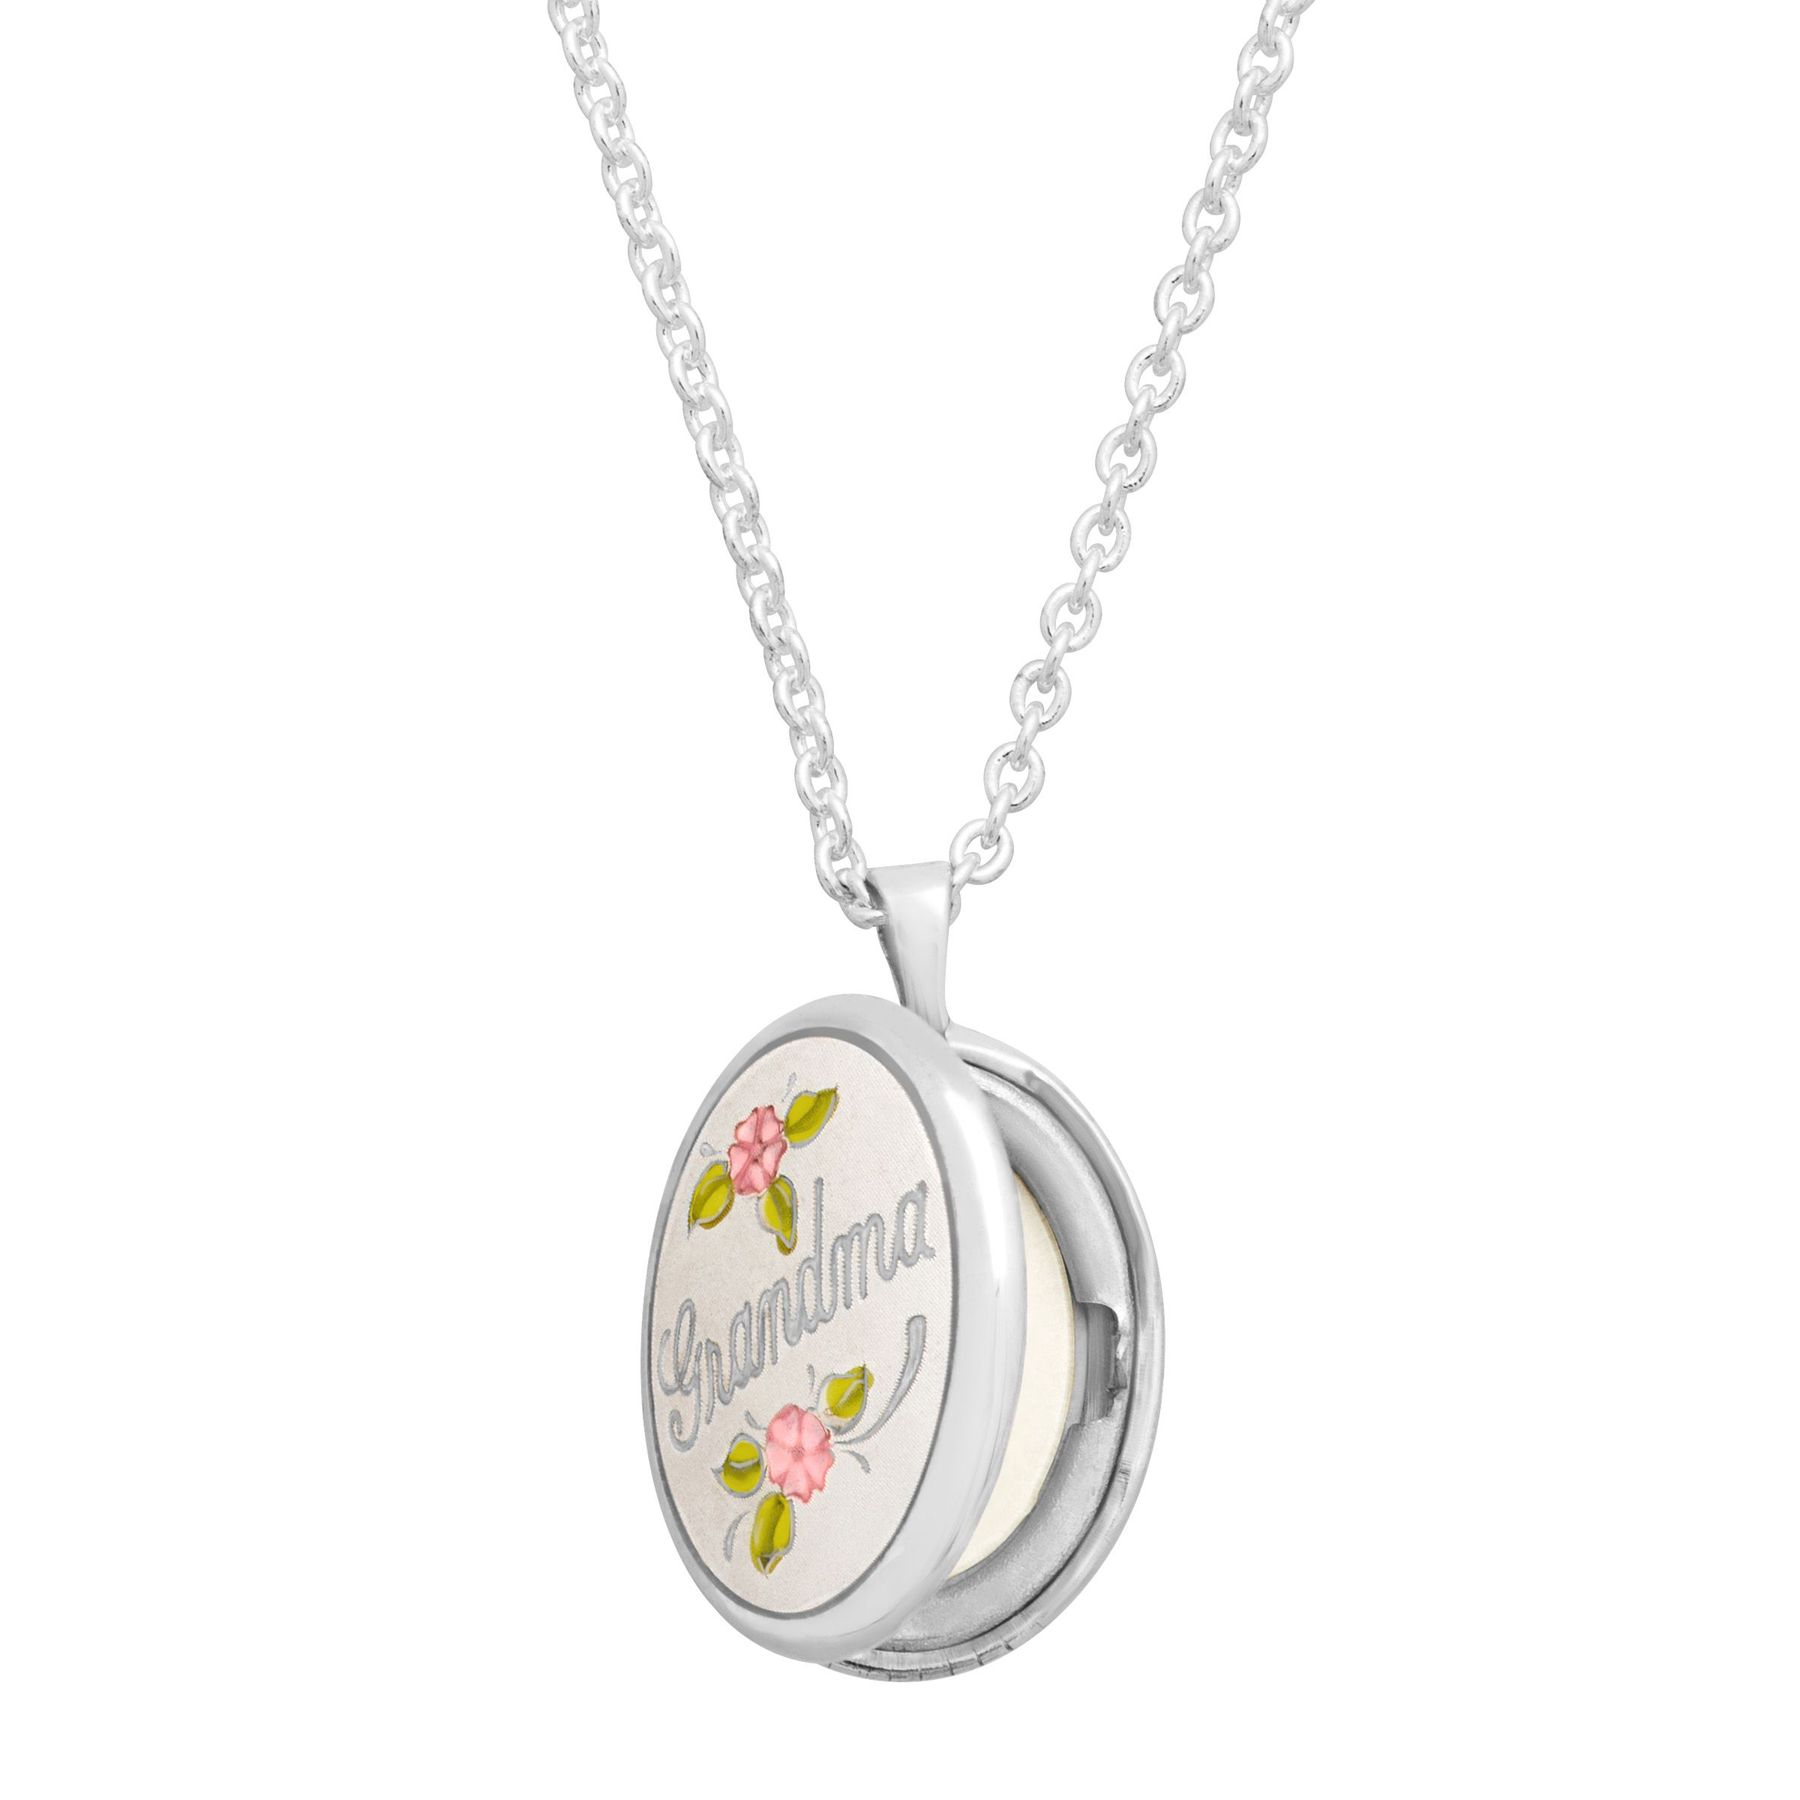 family necklace hand sterling disc at life tree stamped grandma of edited lockets silver sweet